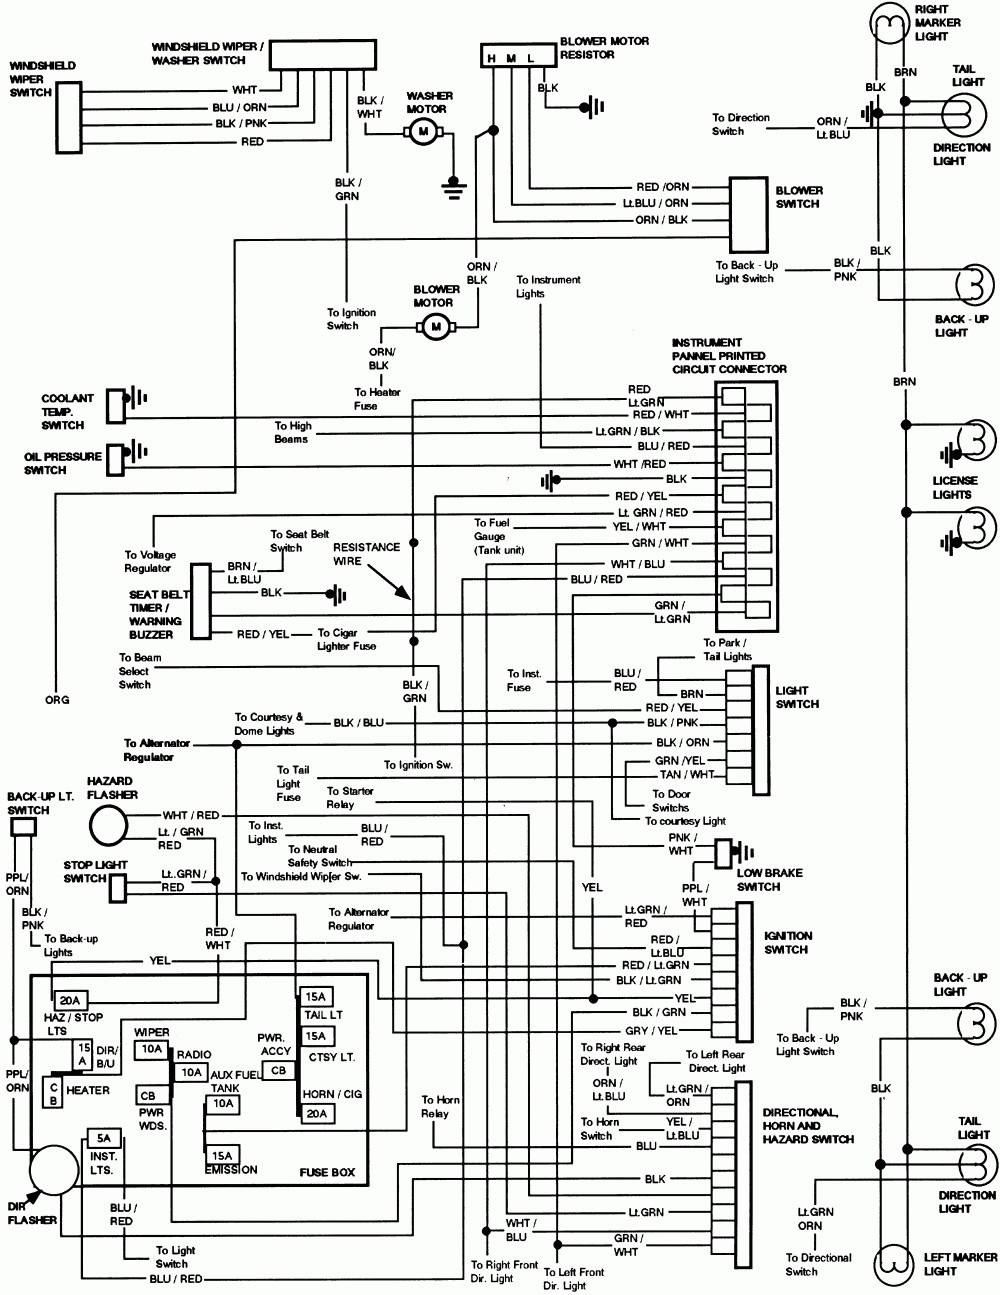 medium resolution of ford f550 wiring diagram wiring diagram log 2010 ford f550 wiring diagram